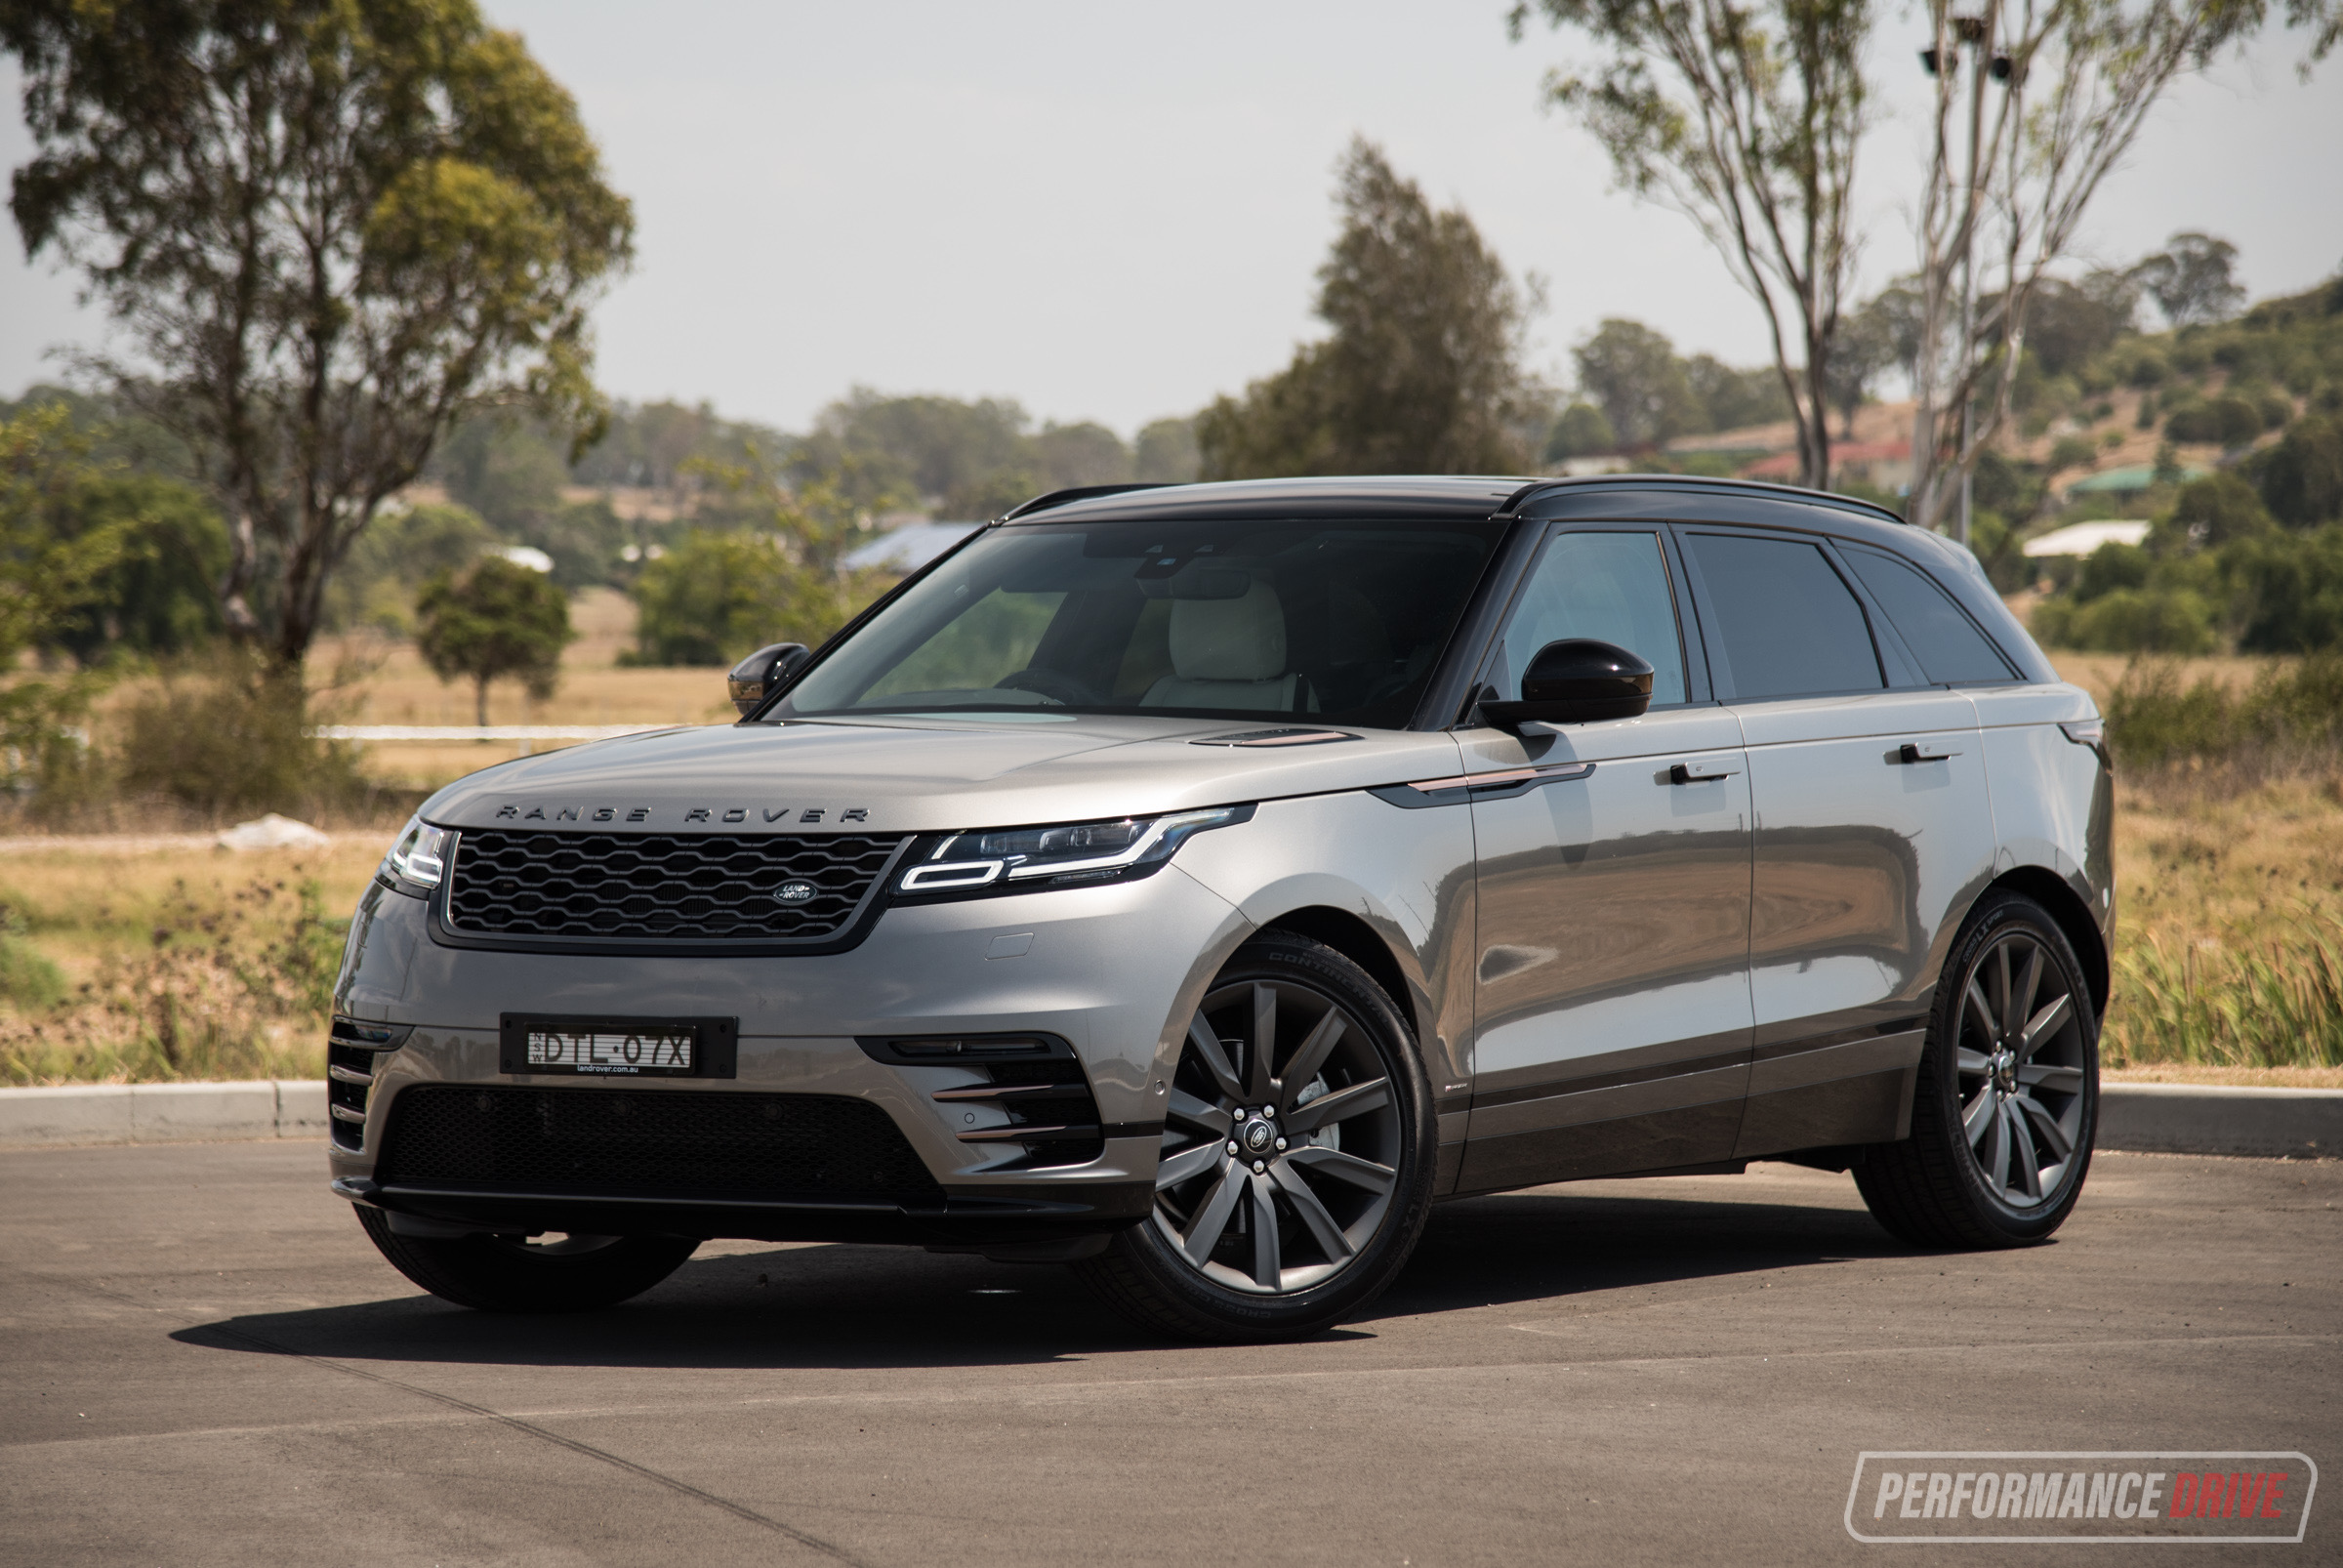 2018 Land Rover Discovery Sport Review >> 2018 Range Rover Velar P380 R-Dynamic SE review (video) | PerformanceDrive